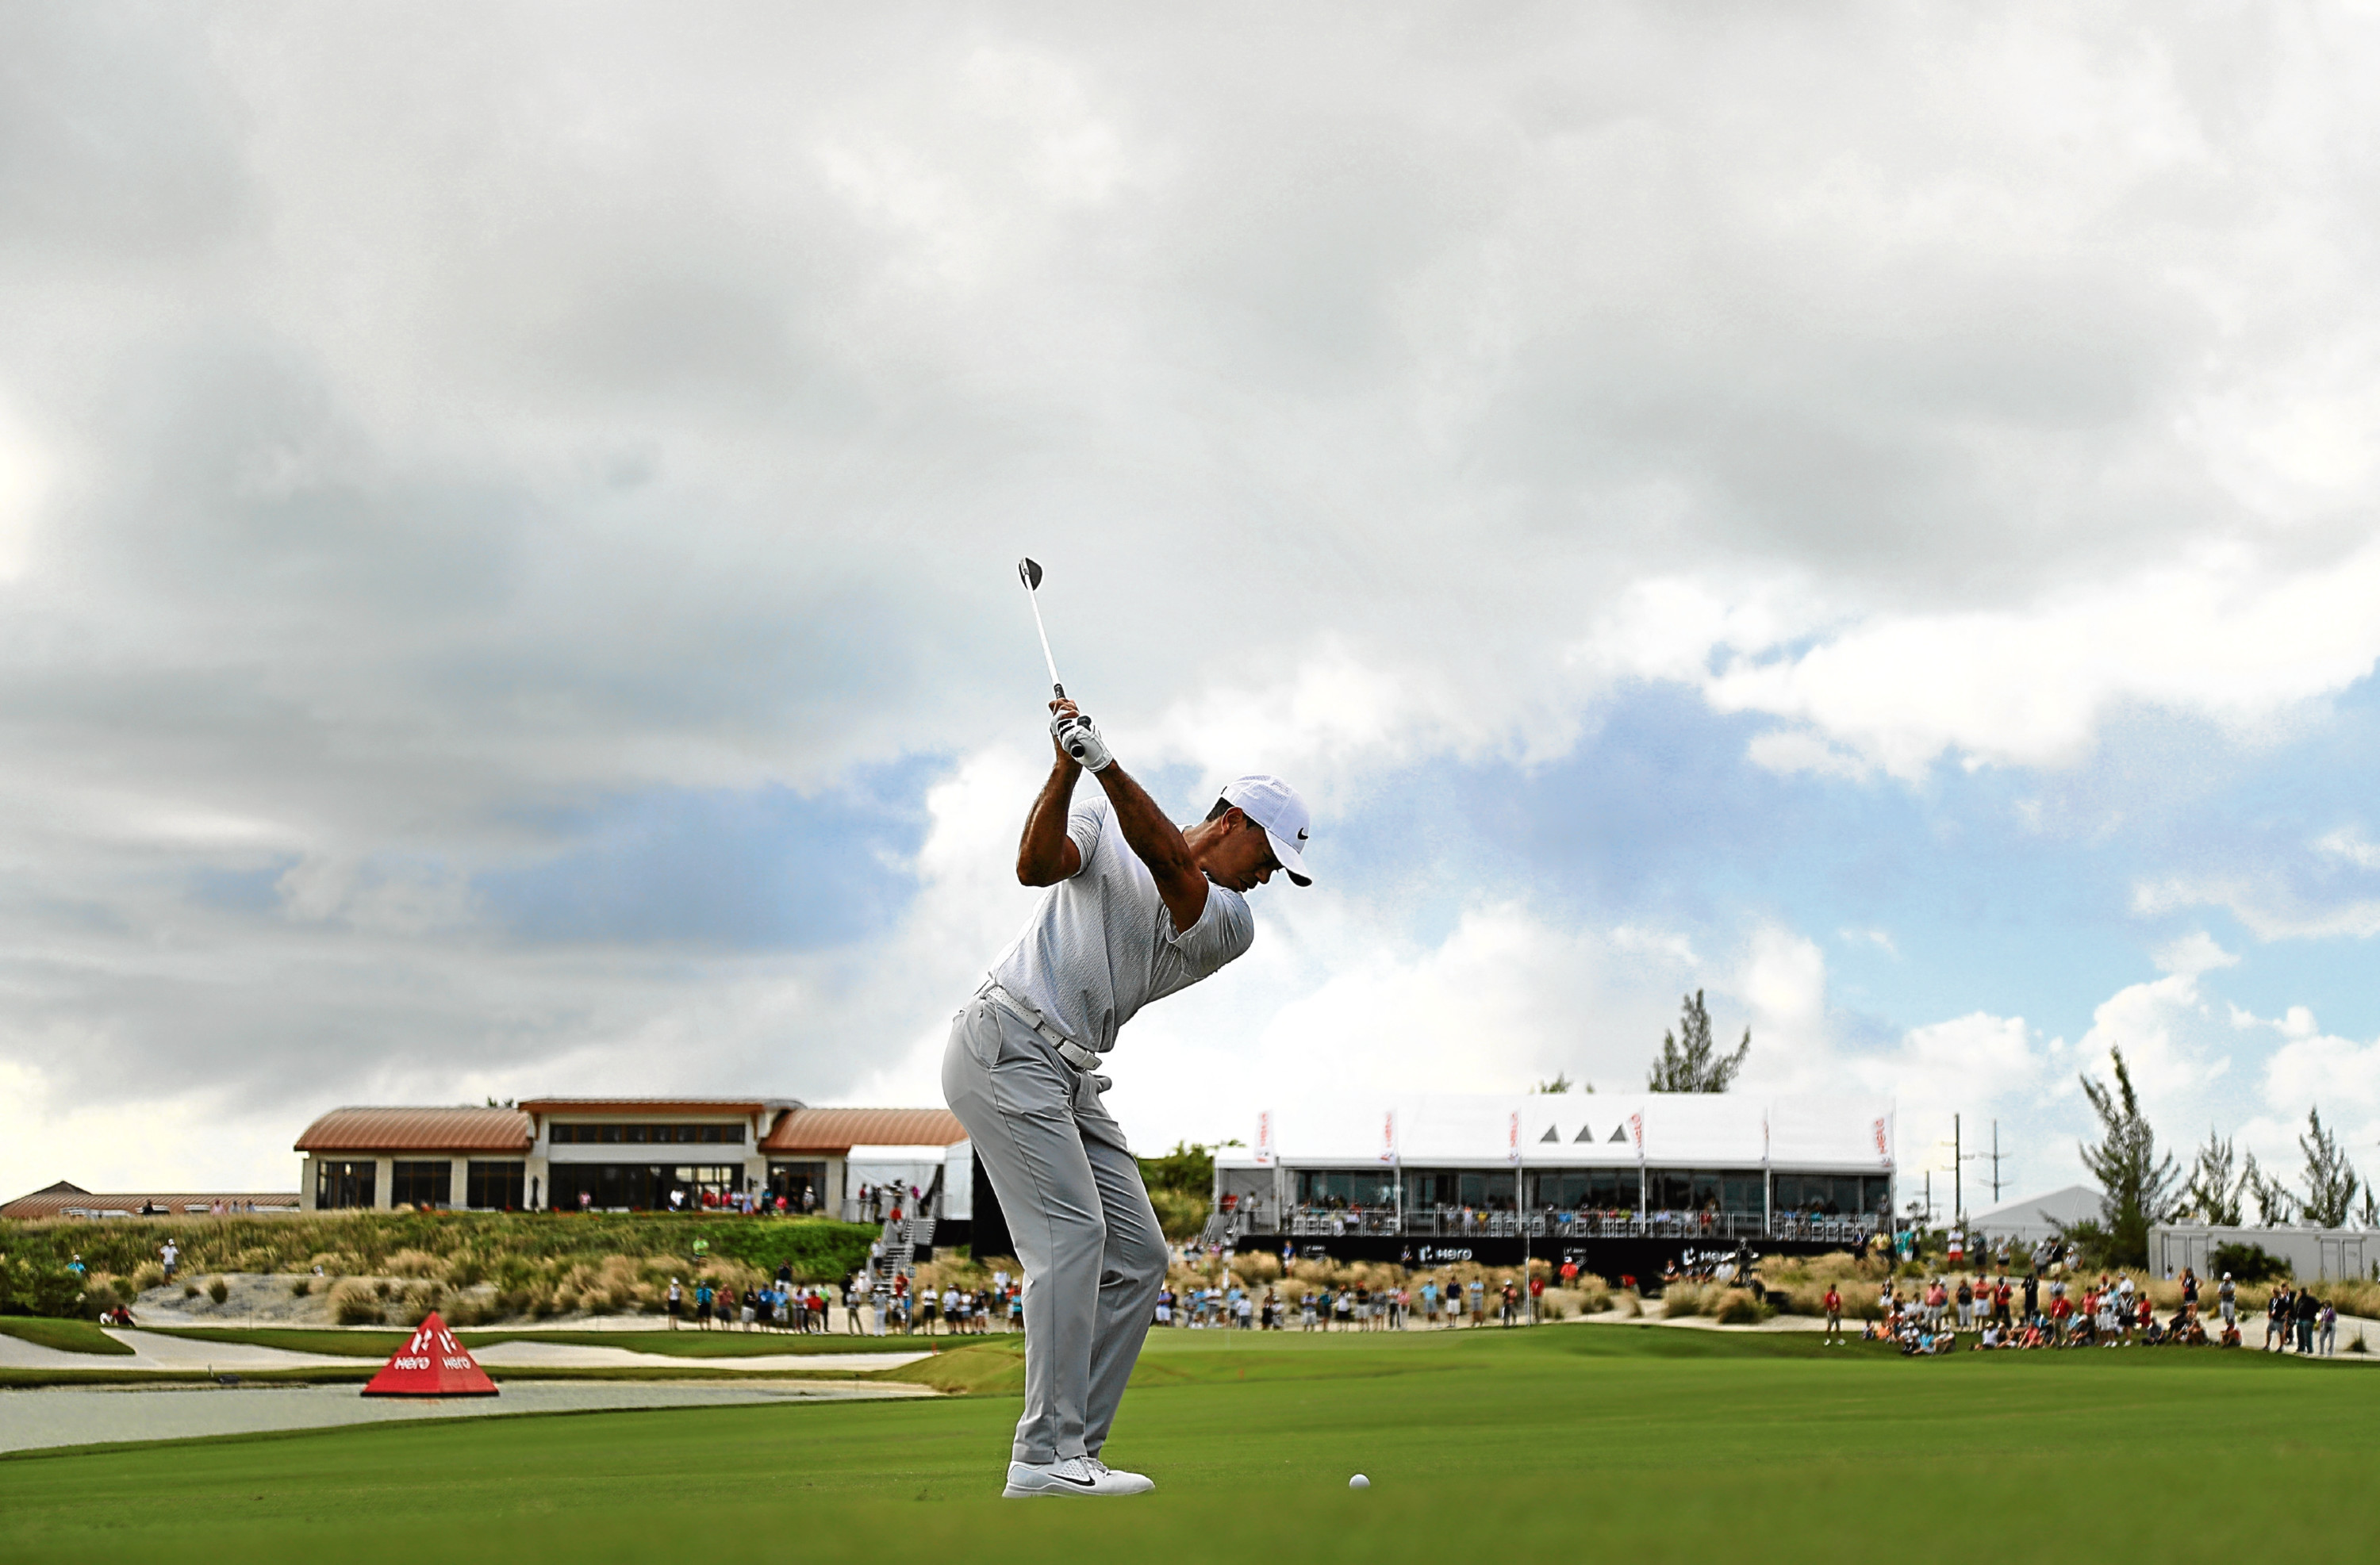 Tiger Woods' return this week will help with golf's troublesome public perception.